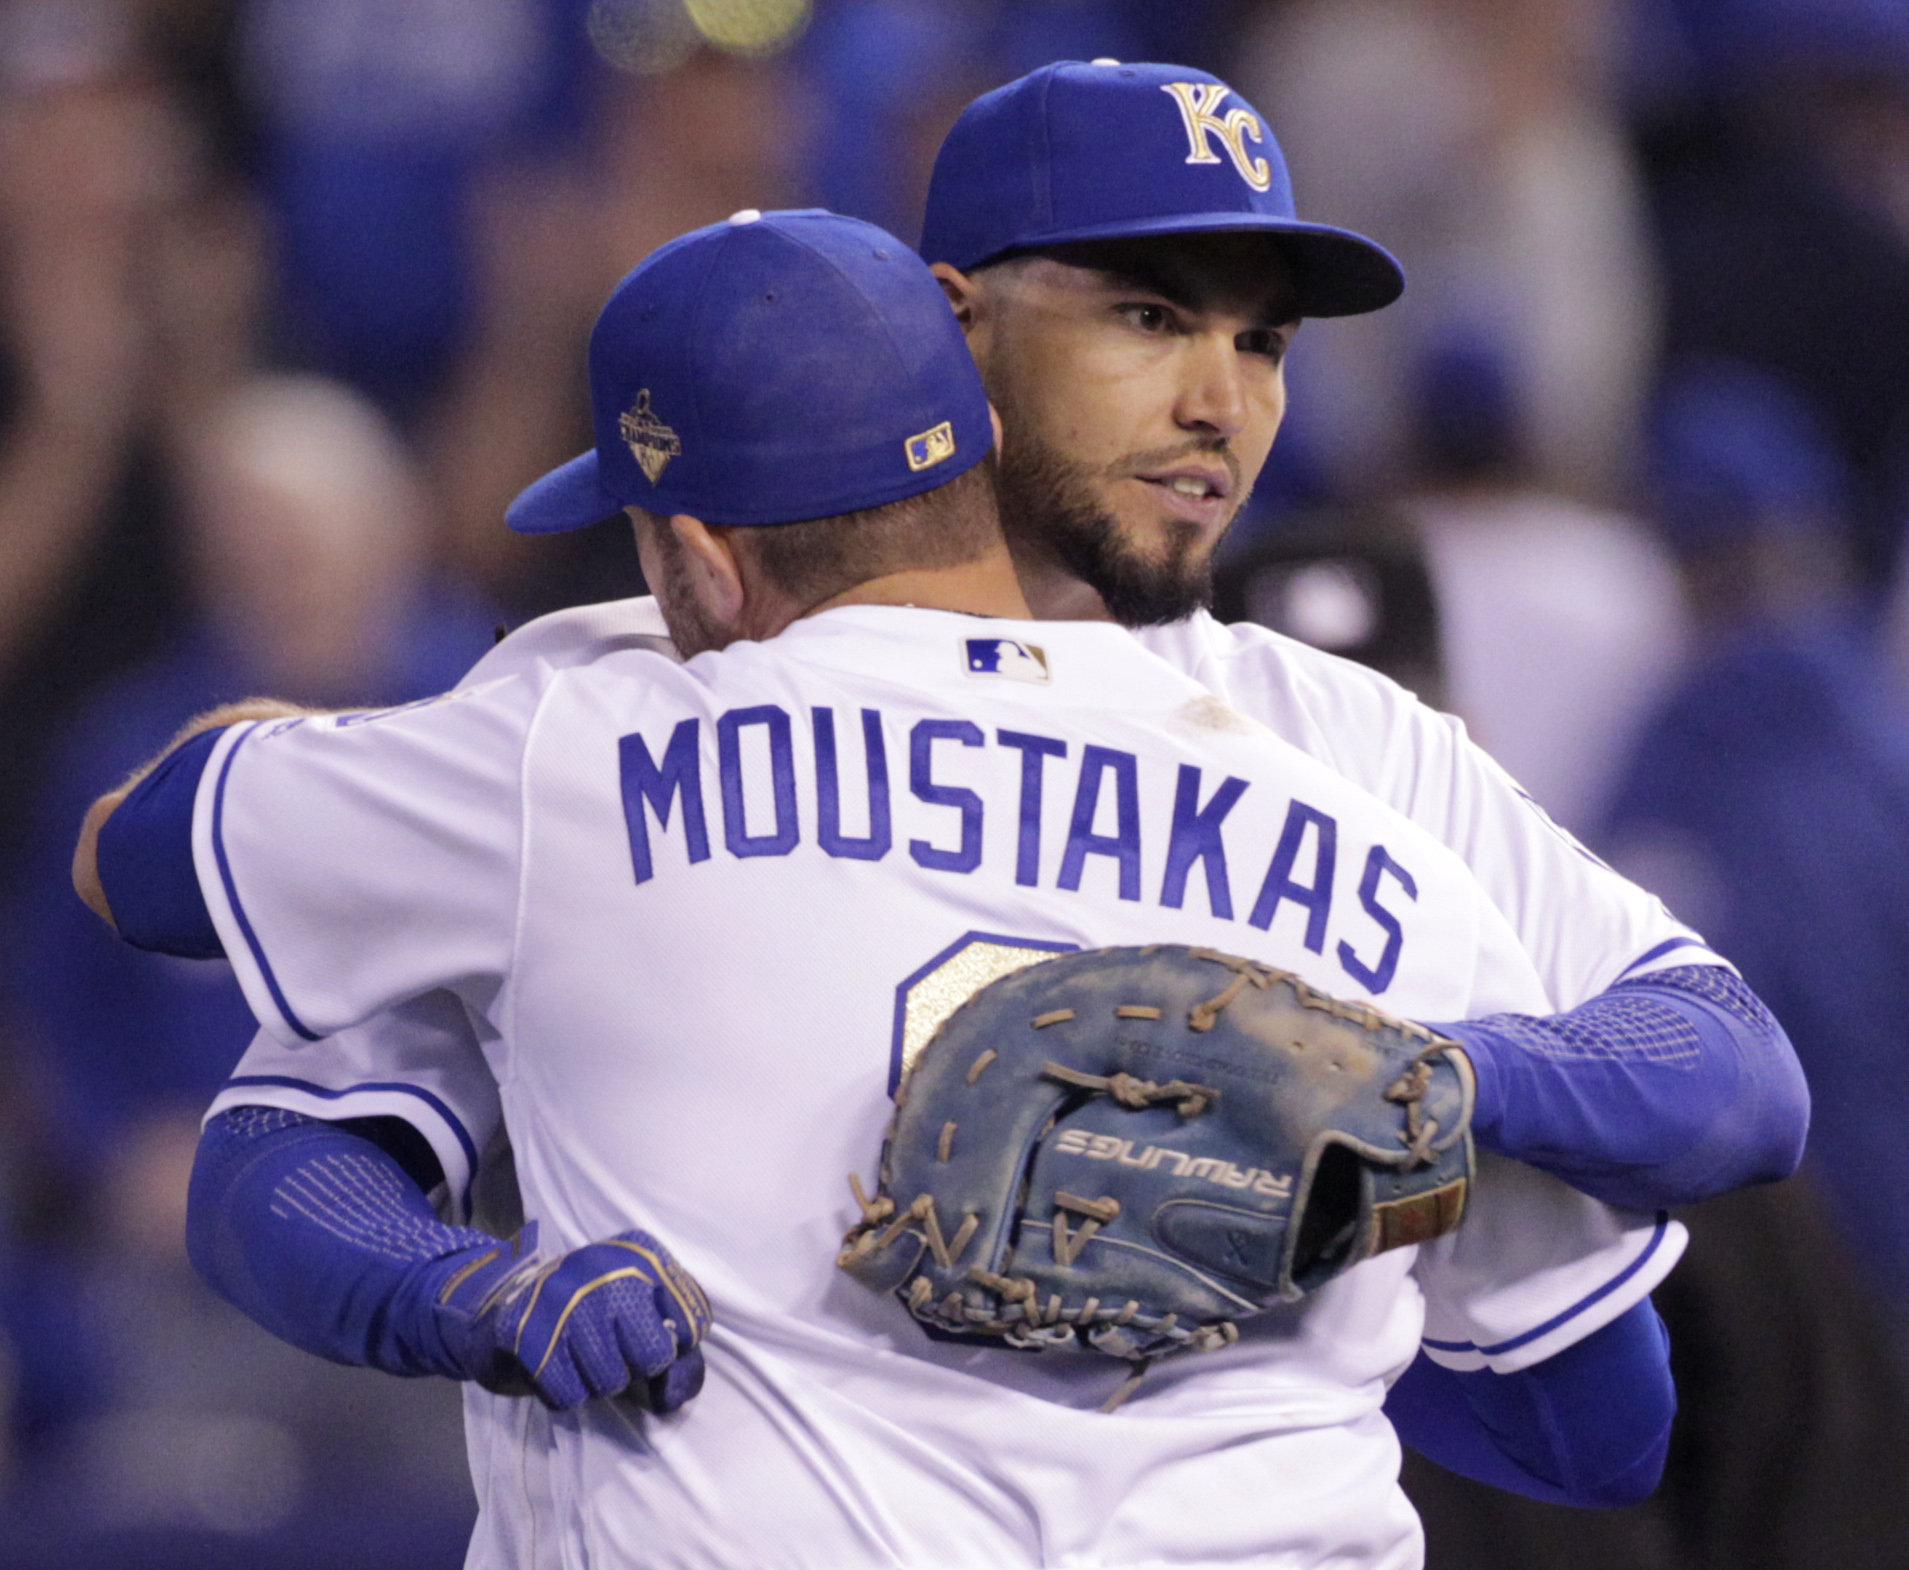 Kansas City Royals first baseman Eric Hosmer, background, celebrates with teammate Mike Moustakas (8) following a baseball game against the New York Mets at Kauffman Stadium in Kansas City, Mo., Sunday, April 3, 2016. The Royals defeated the Mets 4-3. (AP